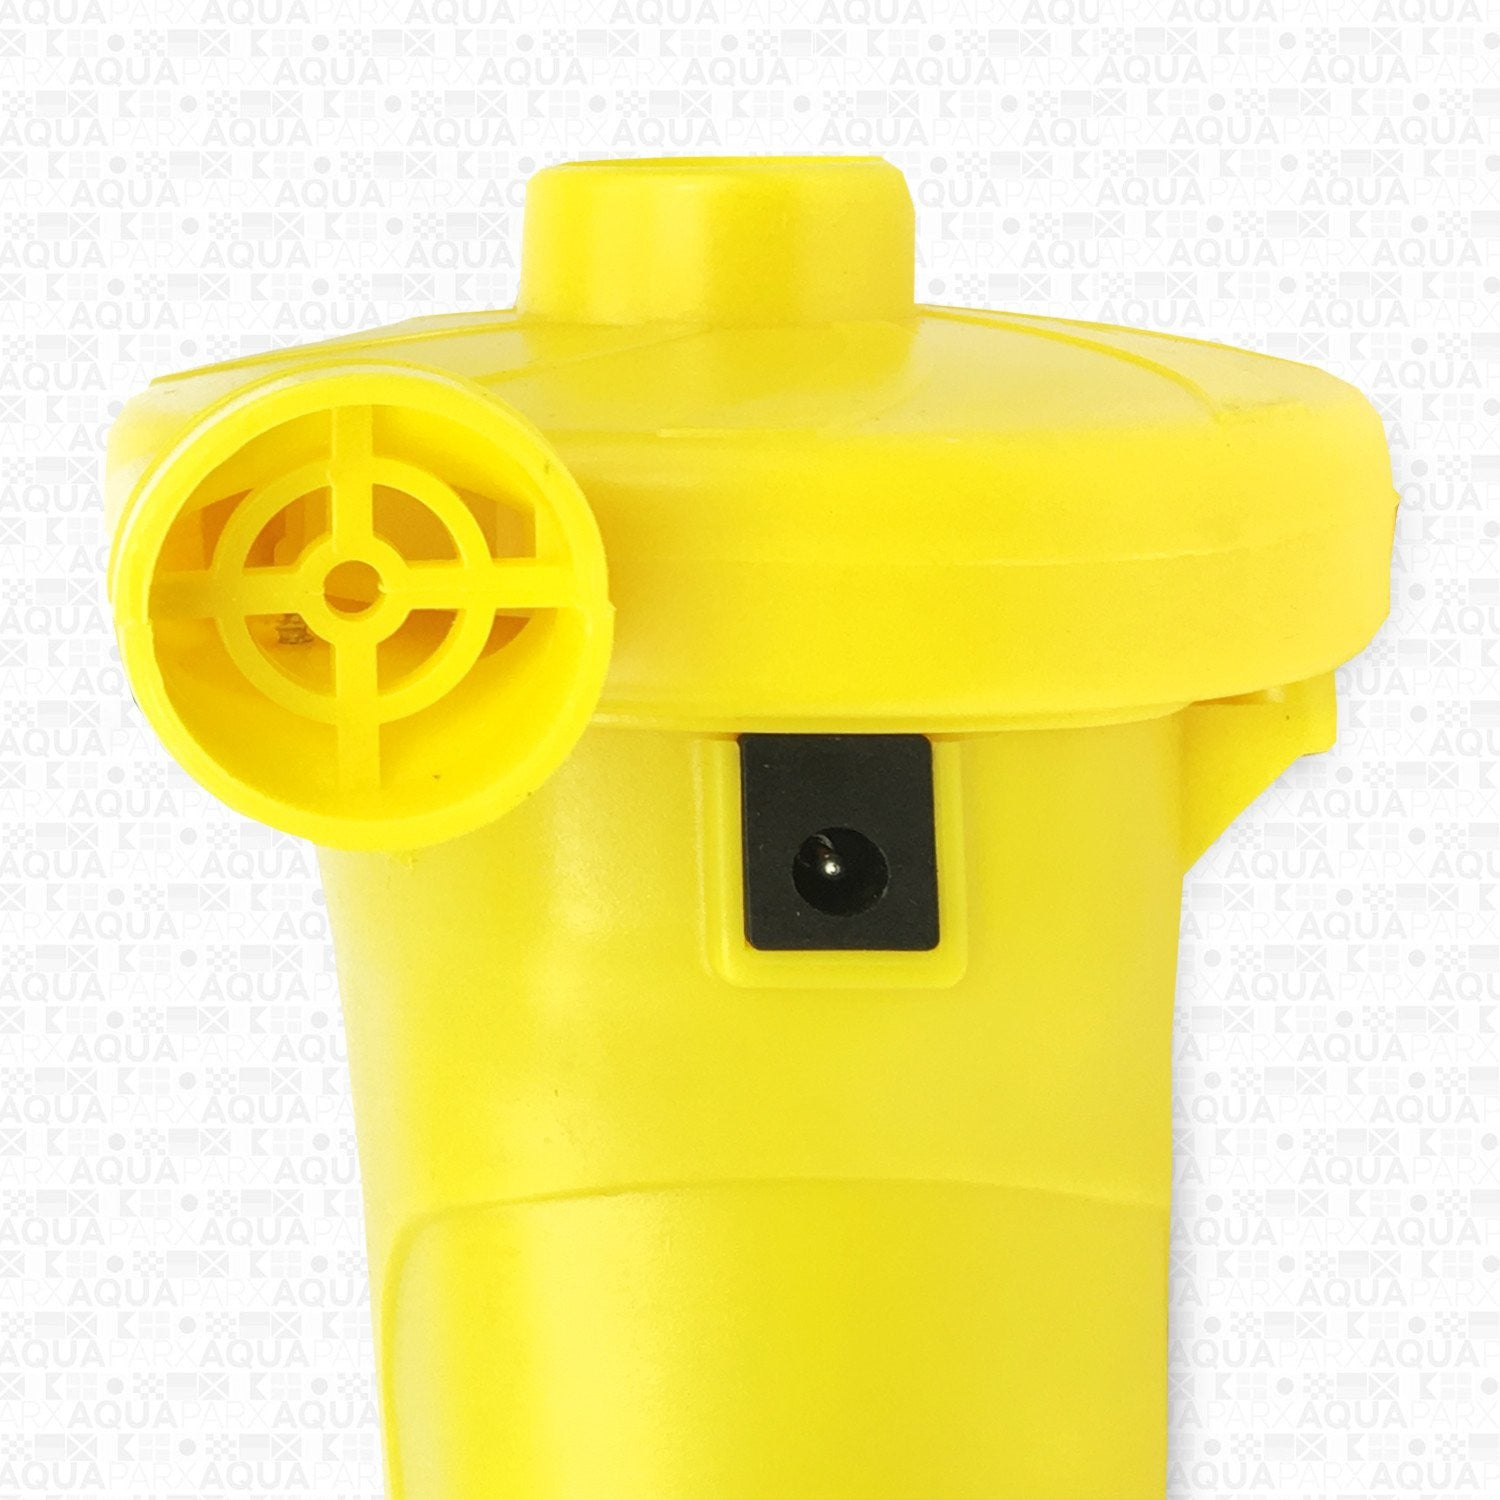 Electric Air Pump - Rechargeable Battery